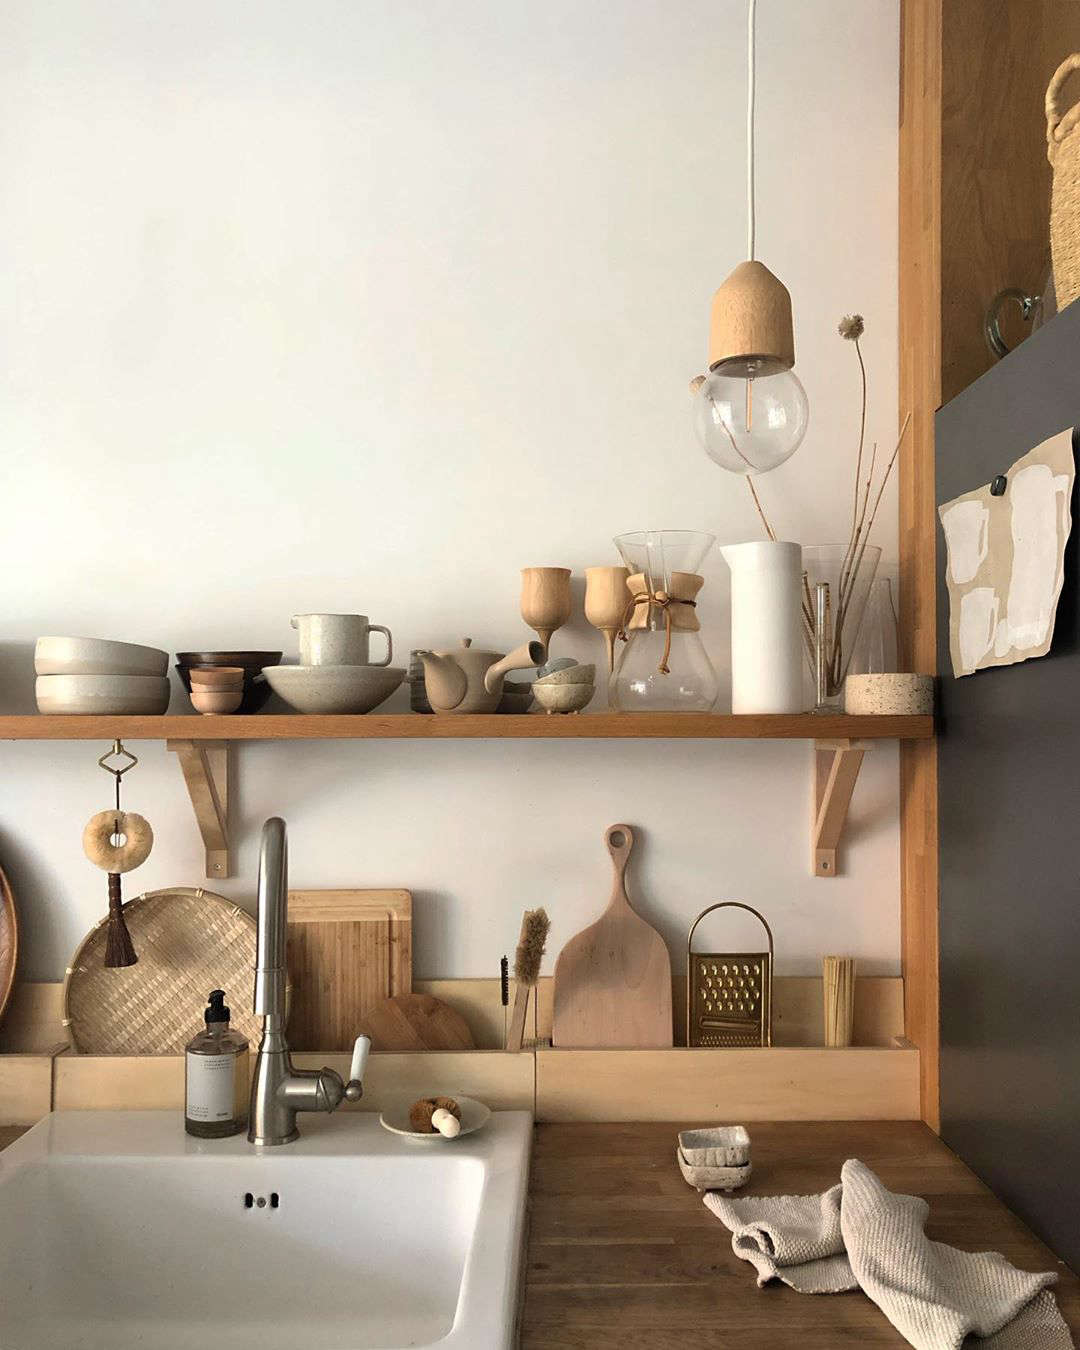 A feature we especially love: the wooden countertop pockets along the wall for storing plates and cooking tools.